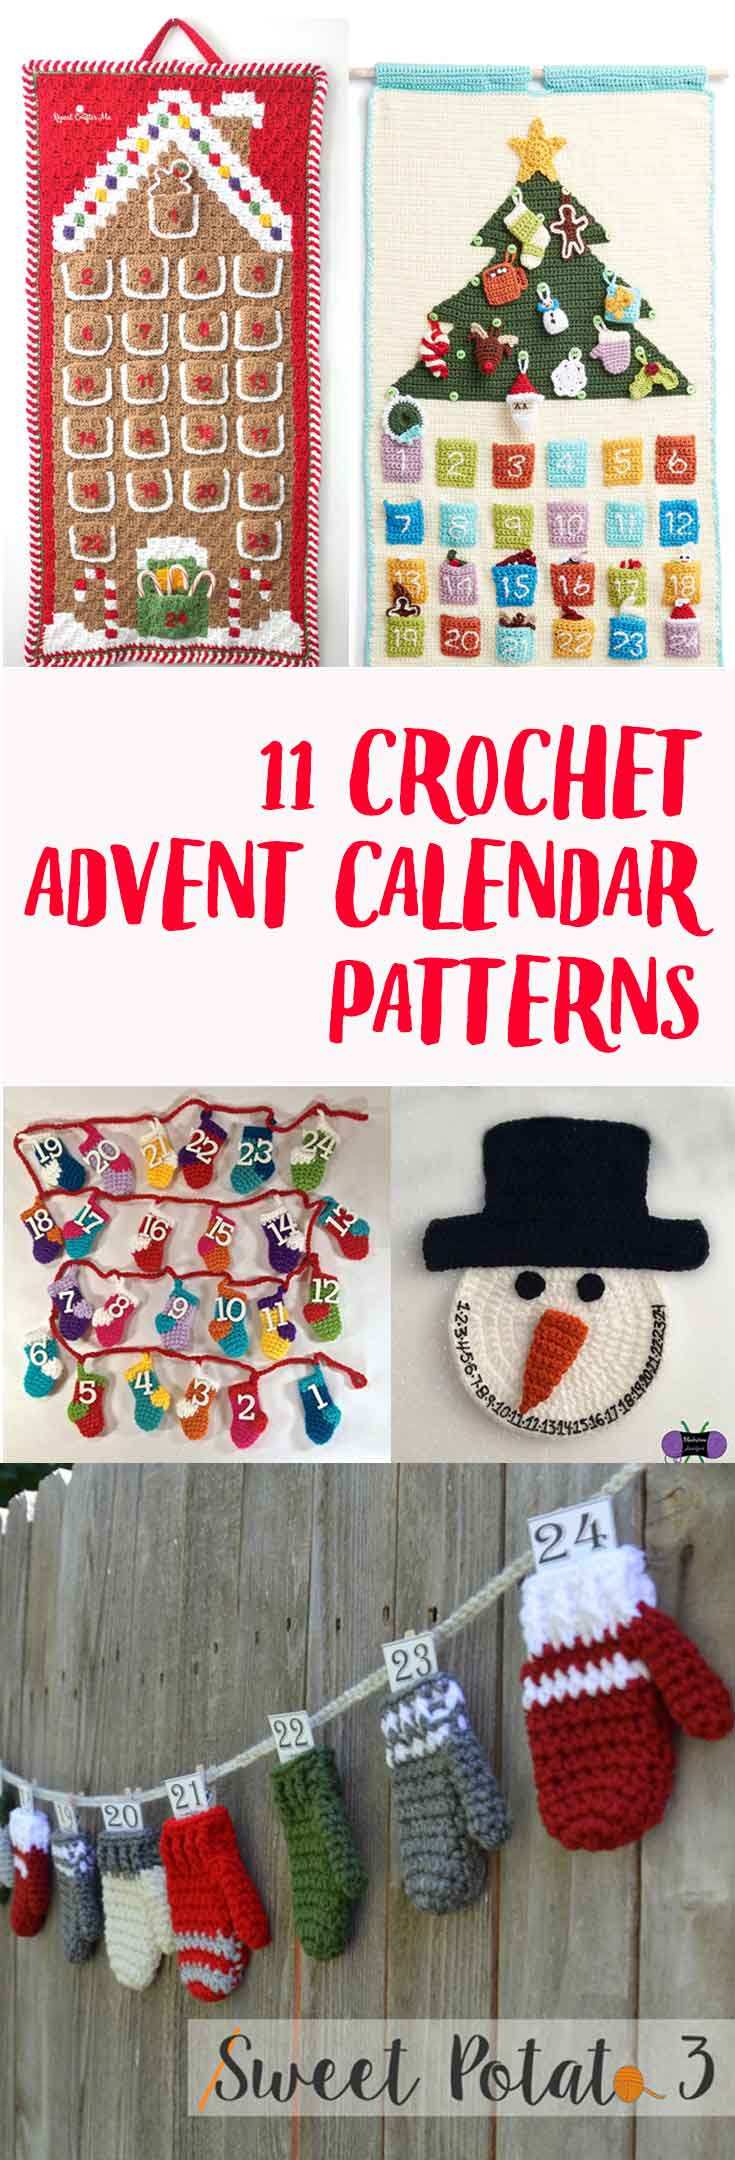 11 of the most awesome crochet advent calendar patterns! Spend less time search and more time crocheting with this roundup!